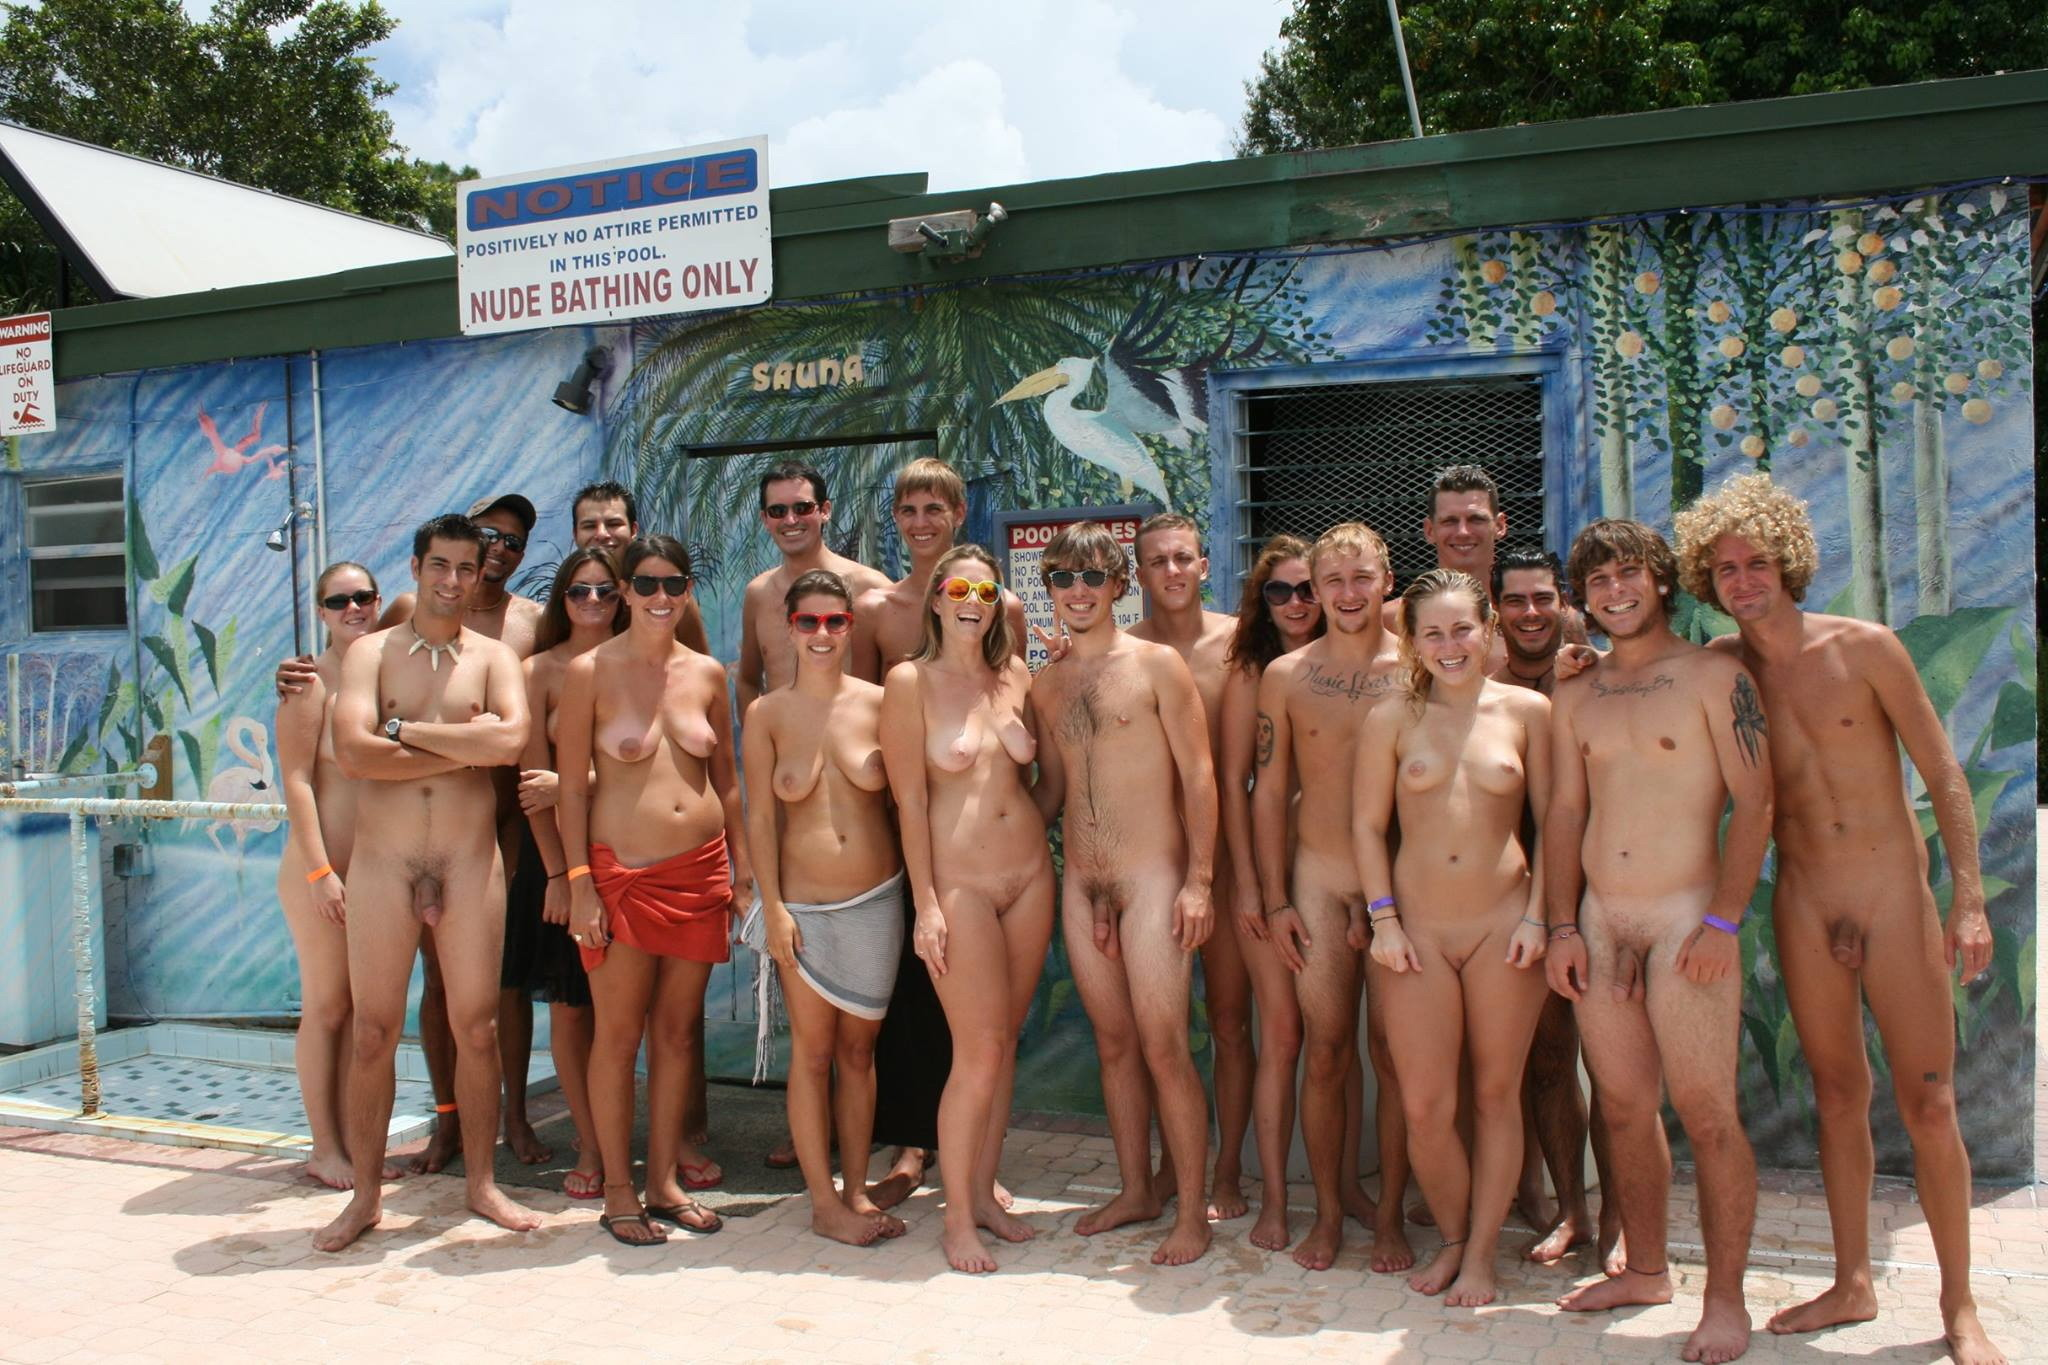 Nudism (August) - MOTHERLESS.COM